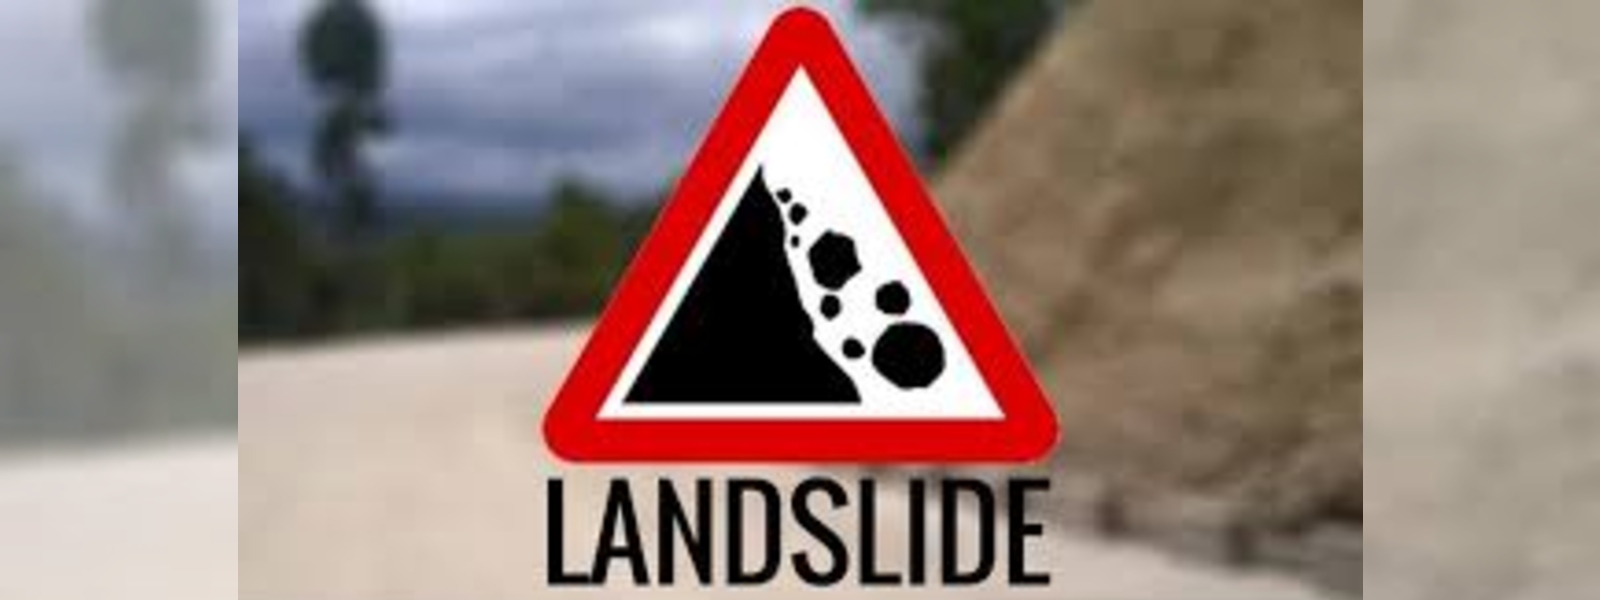 Landslide threat forces 11 families to evacuate in Kalutara